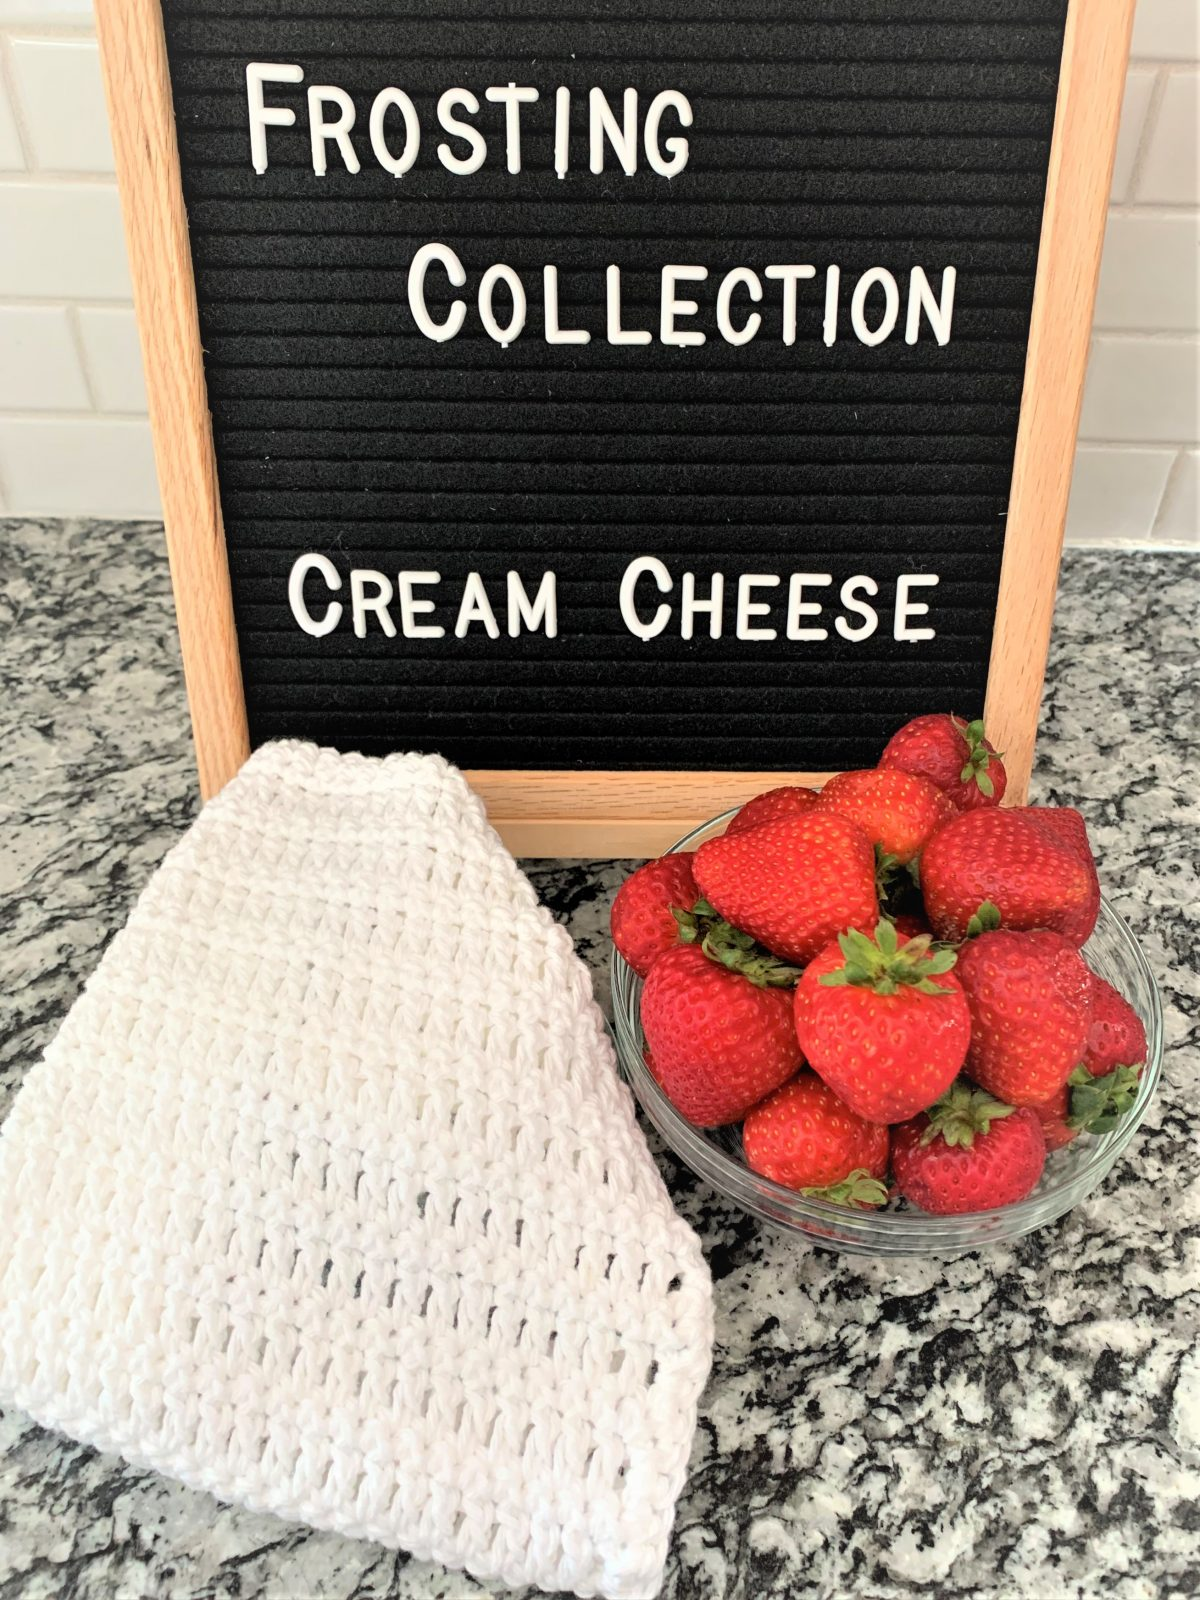 Free Crochet Dishcloth Pattern – Frosting Collection – Cream Cheese – Part 2